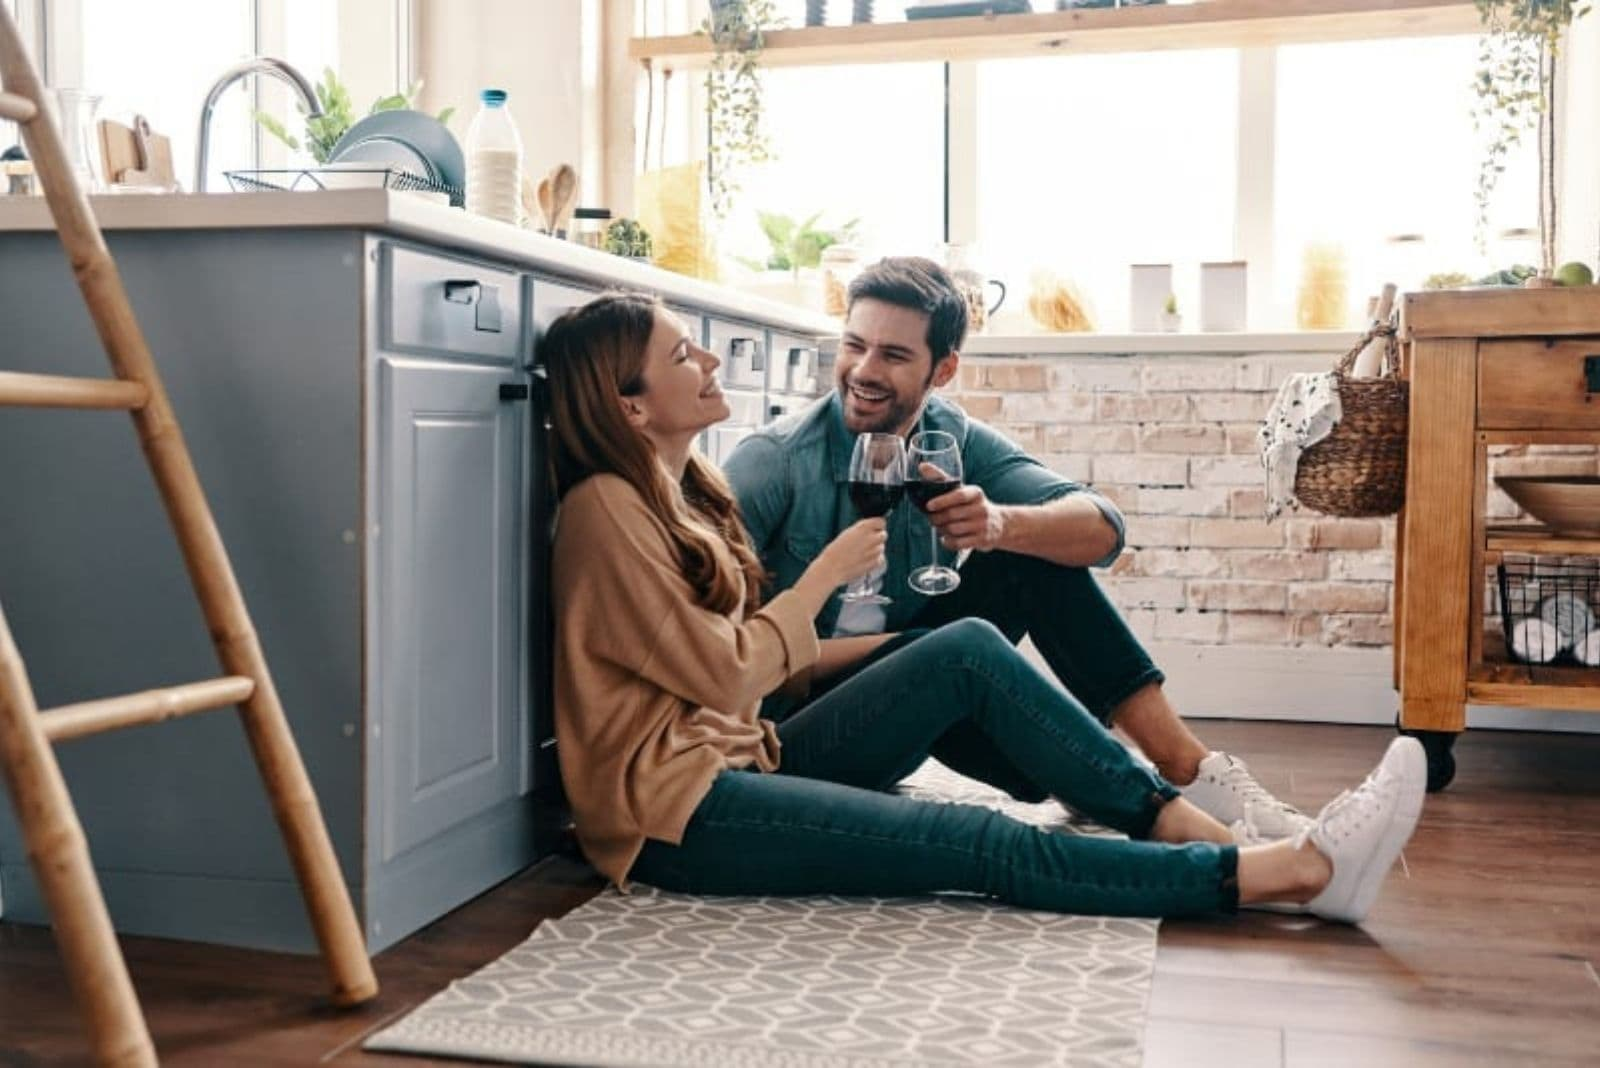 a man and a woman sit on the floor drinking wine and laughing